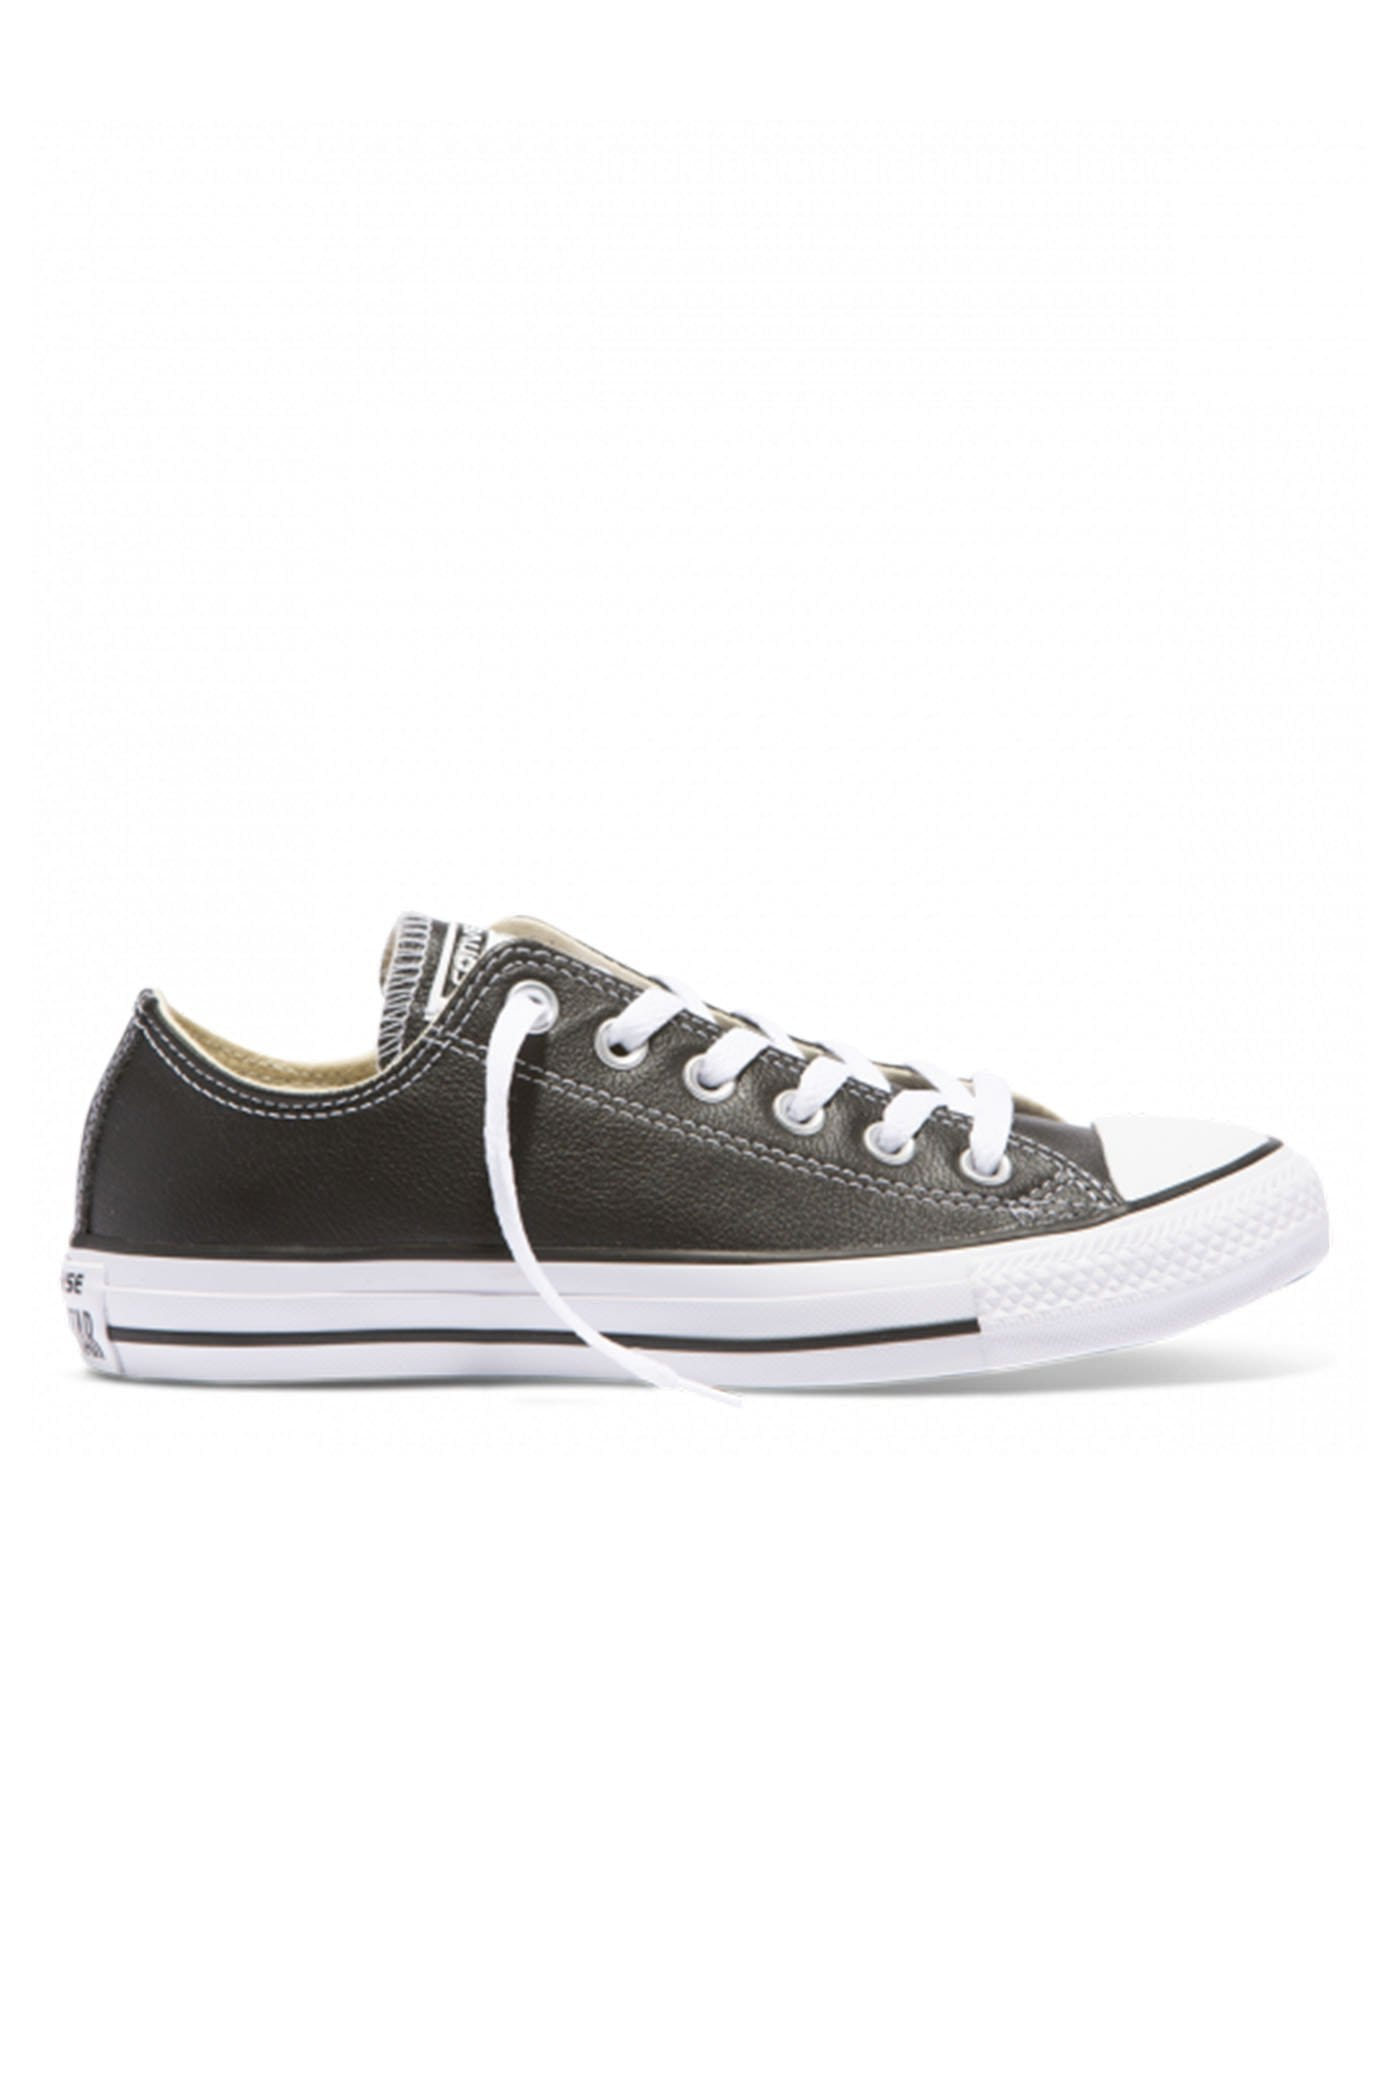 Chuck Taylor All Star Leather Low Top Black